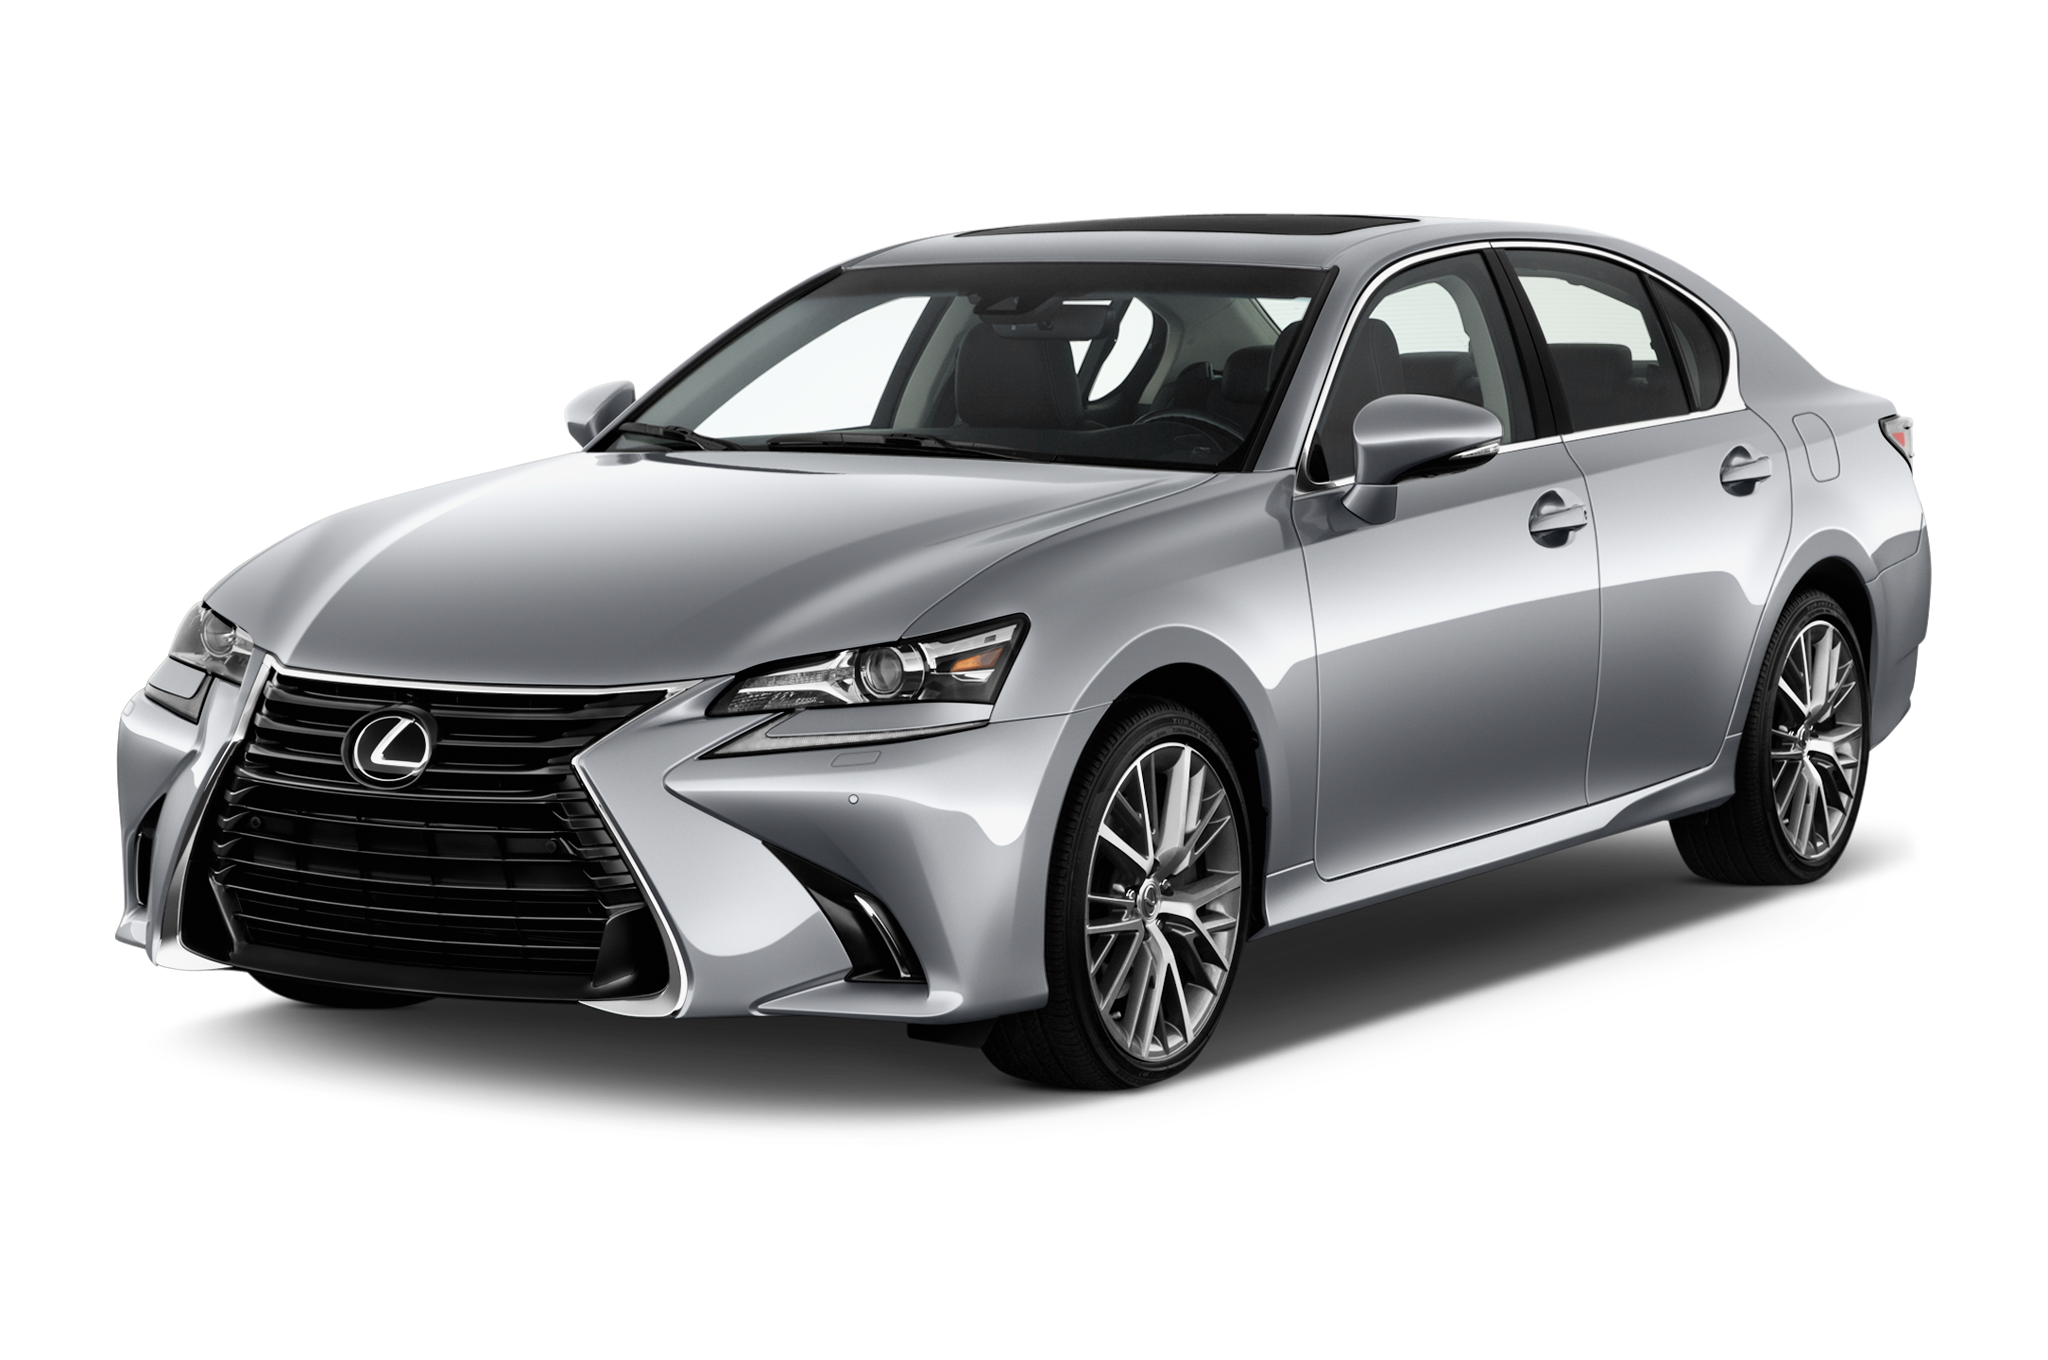 2019 Lexus GS 350 F SPORT RWD Specs and Features - MSN Autos